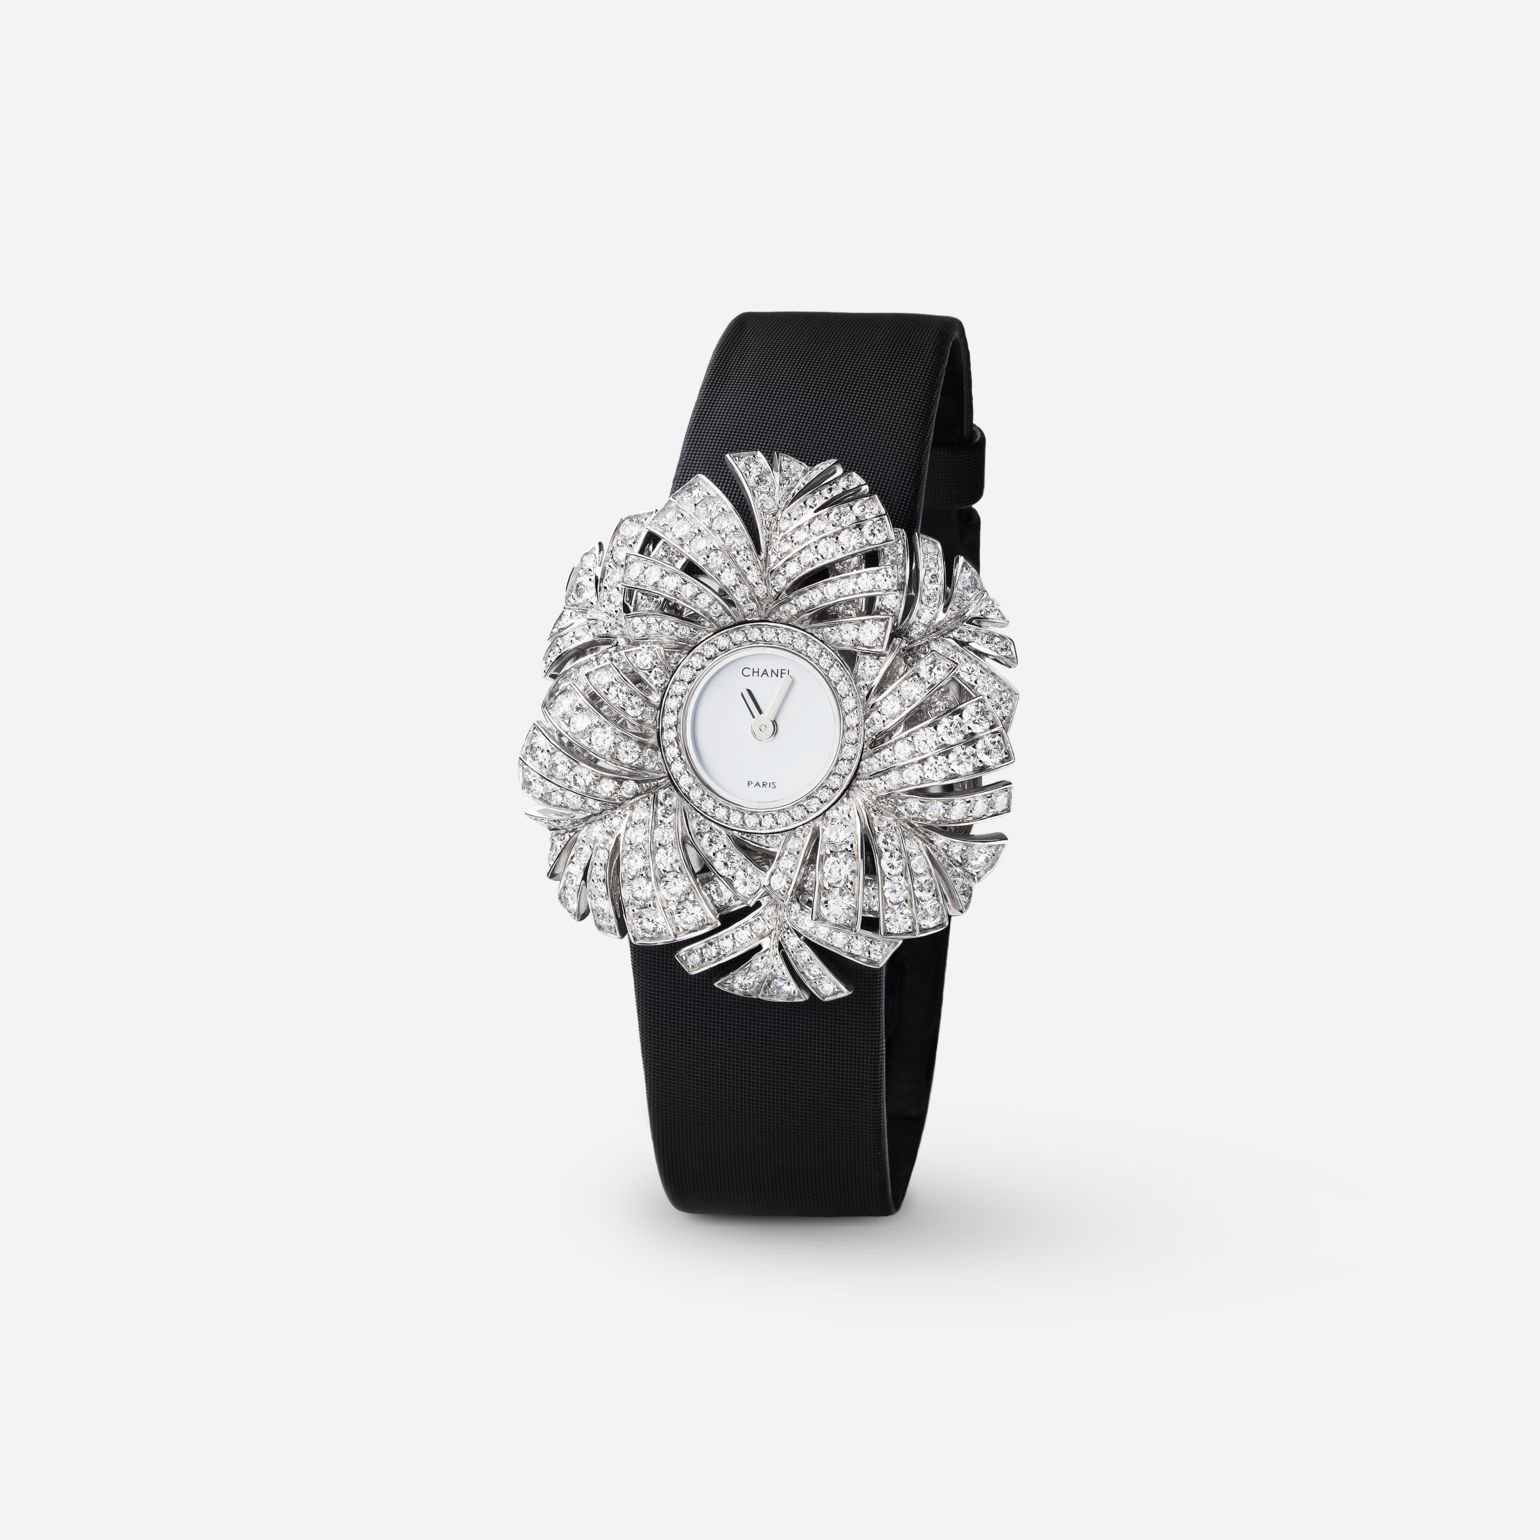 Plume de CHANEL Jewelry Watch Plume panache motif in 18K white gold and diamonds